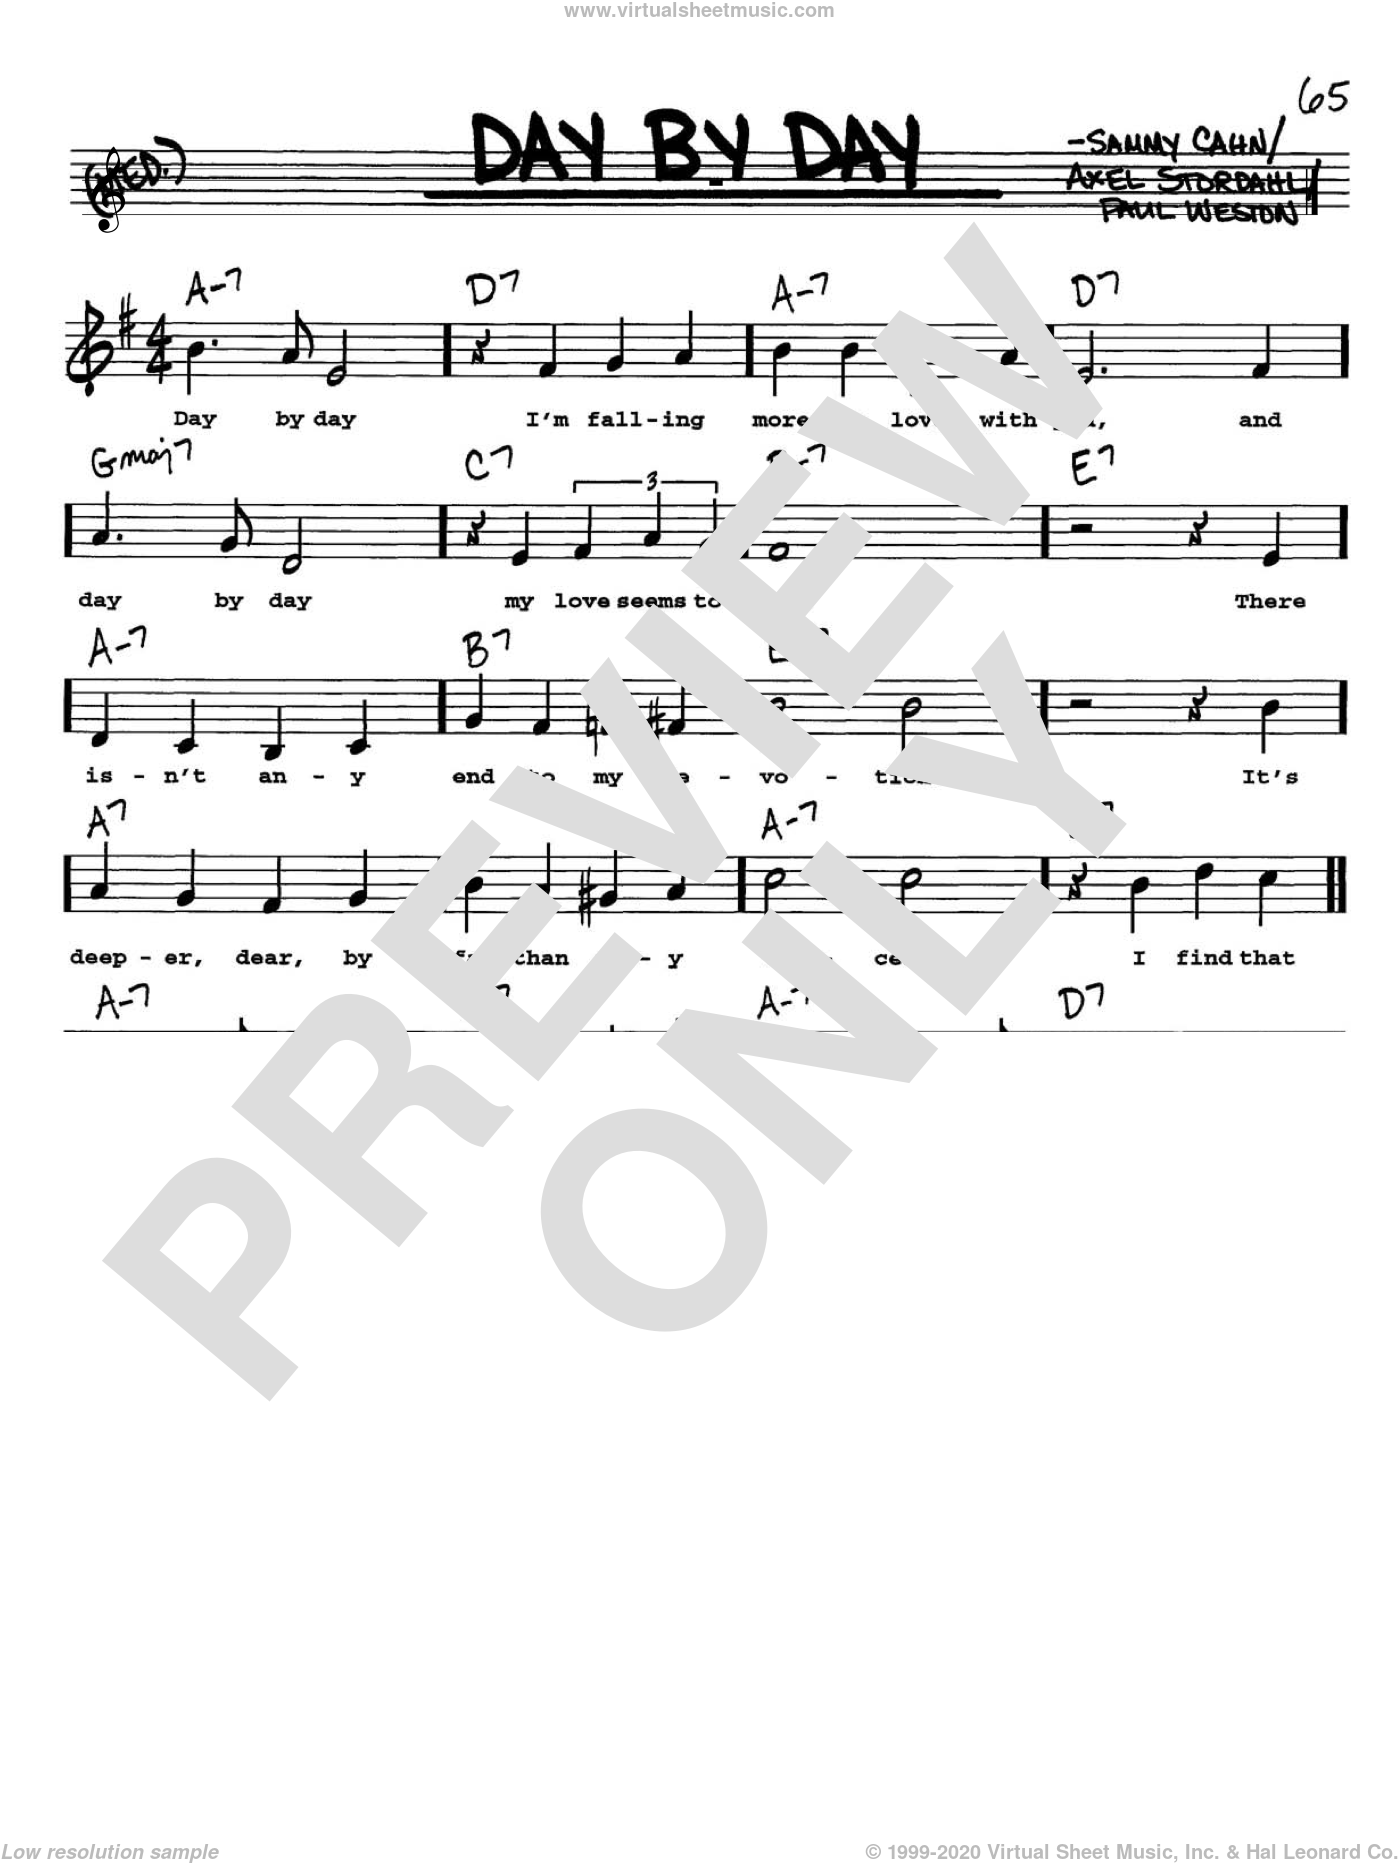 Day By Day sheet music for voice and other instruments (Vocal Volume 1) by Paul Weston, Axel Stordahl and Sammy Cahn. Score Image Preview.